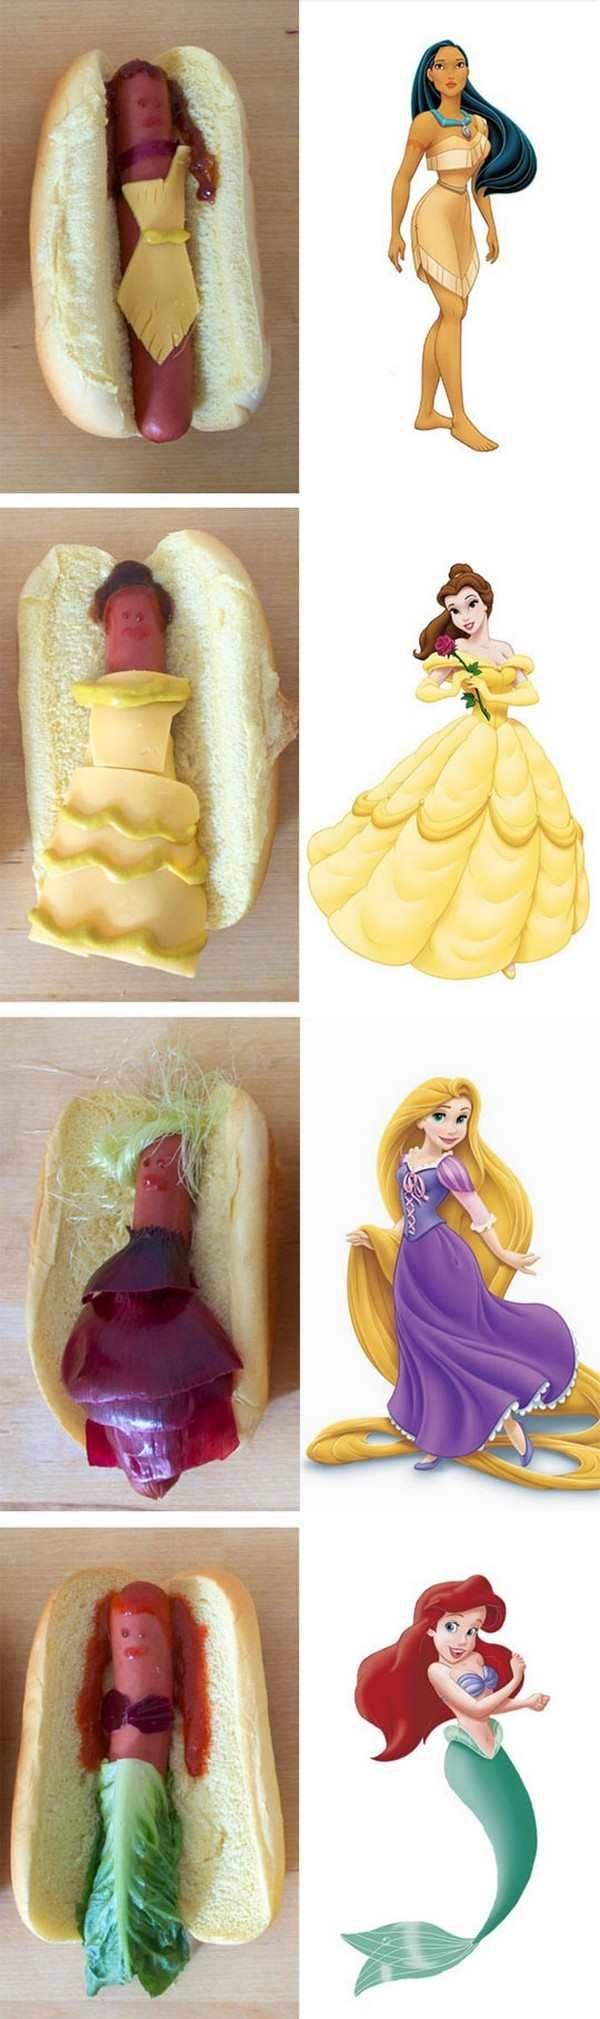 Princess party hotdogs